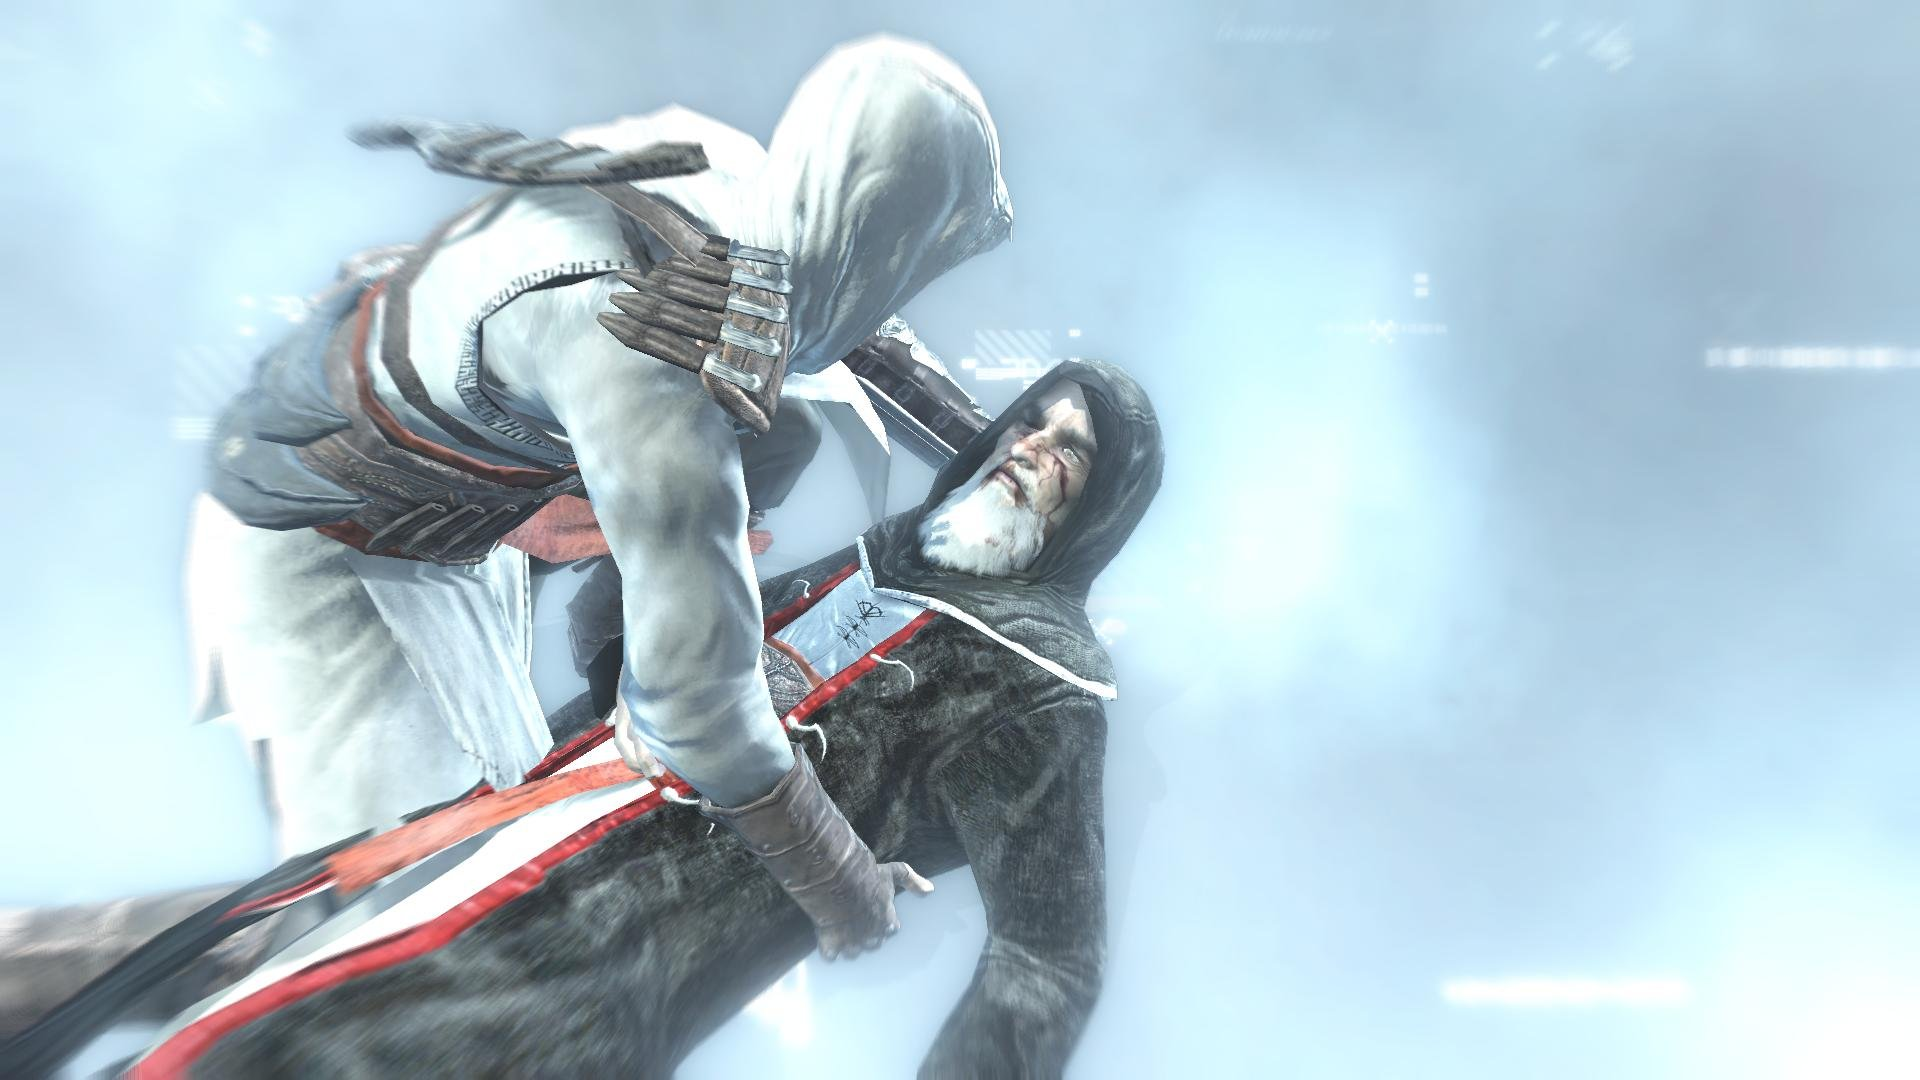 You're Blade is Truly Strong, but your erection is Stronger yet, Altair.